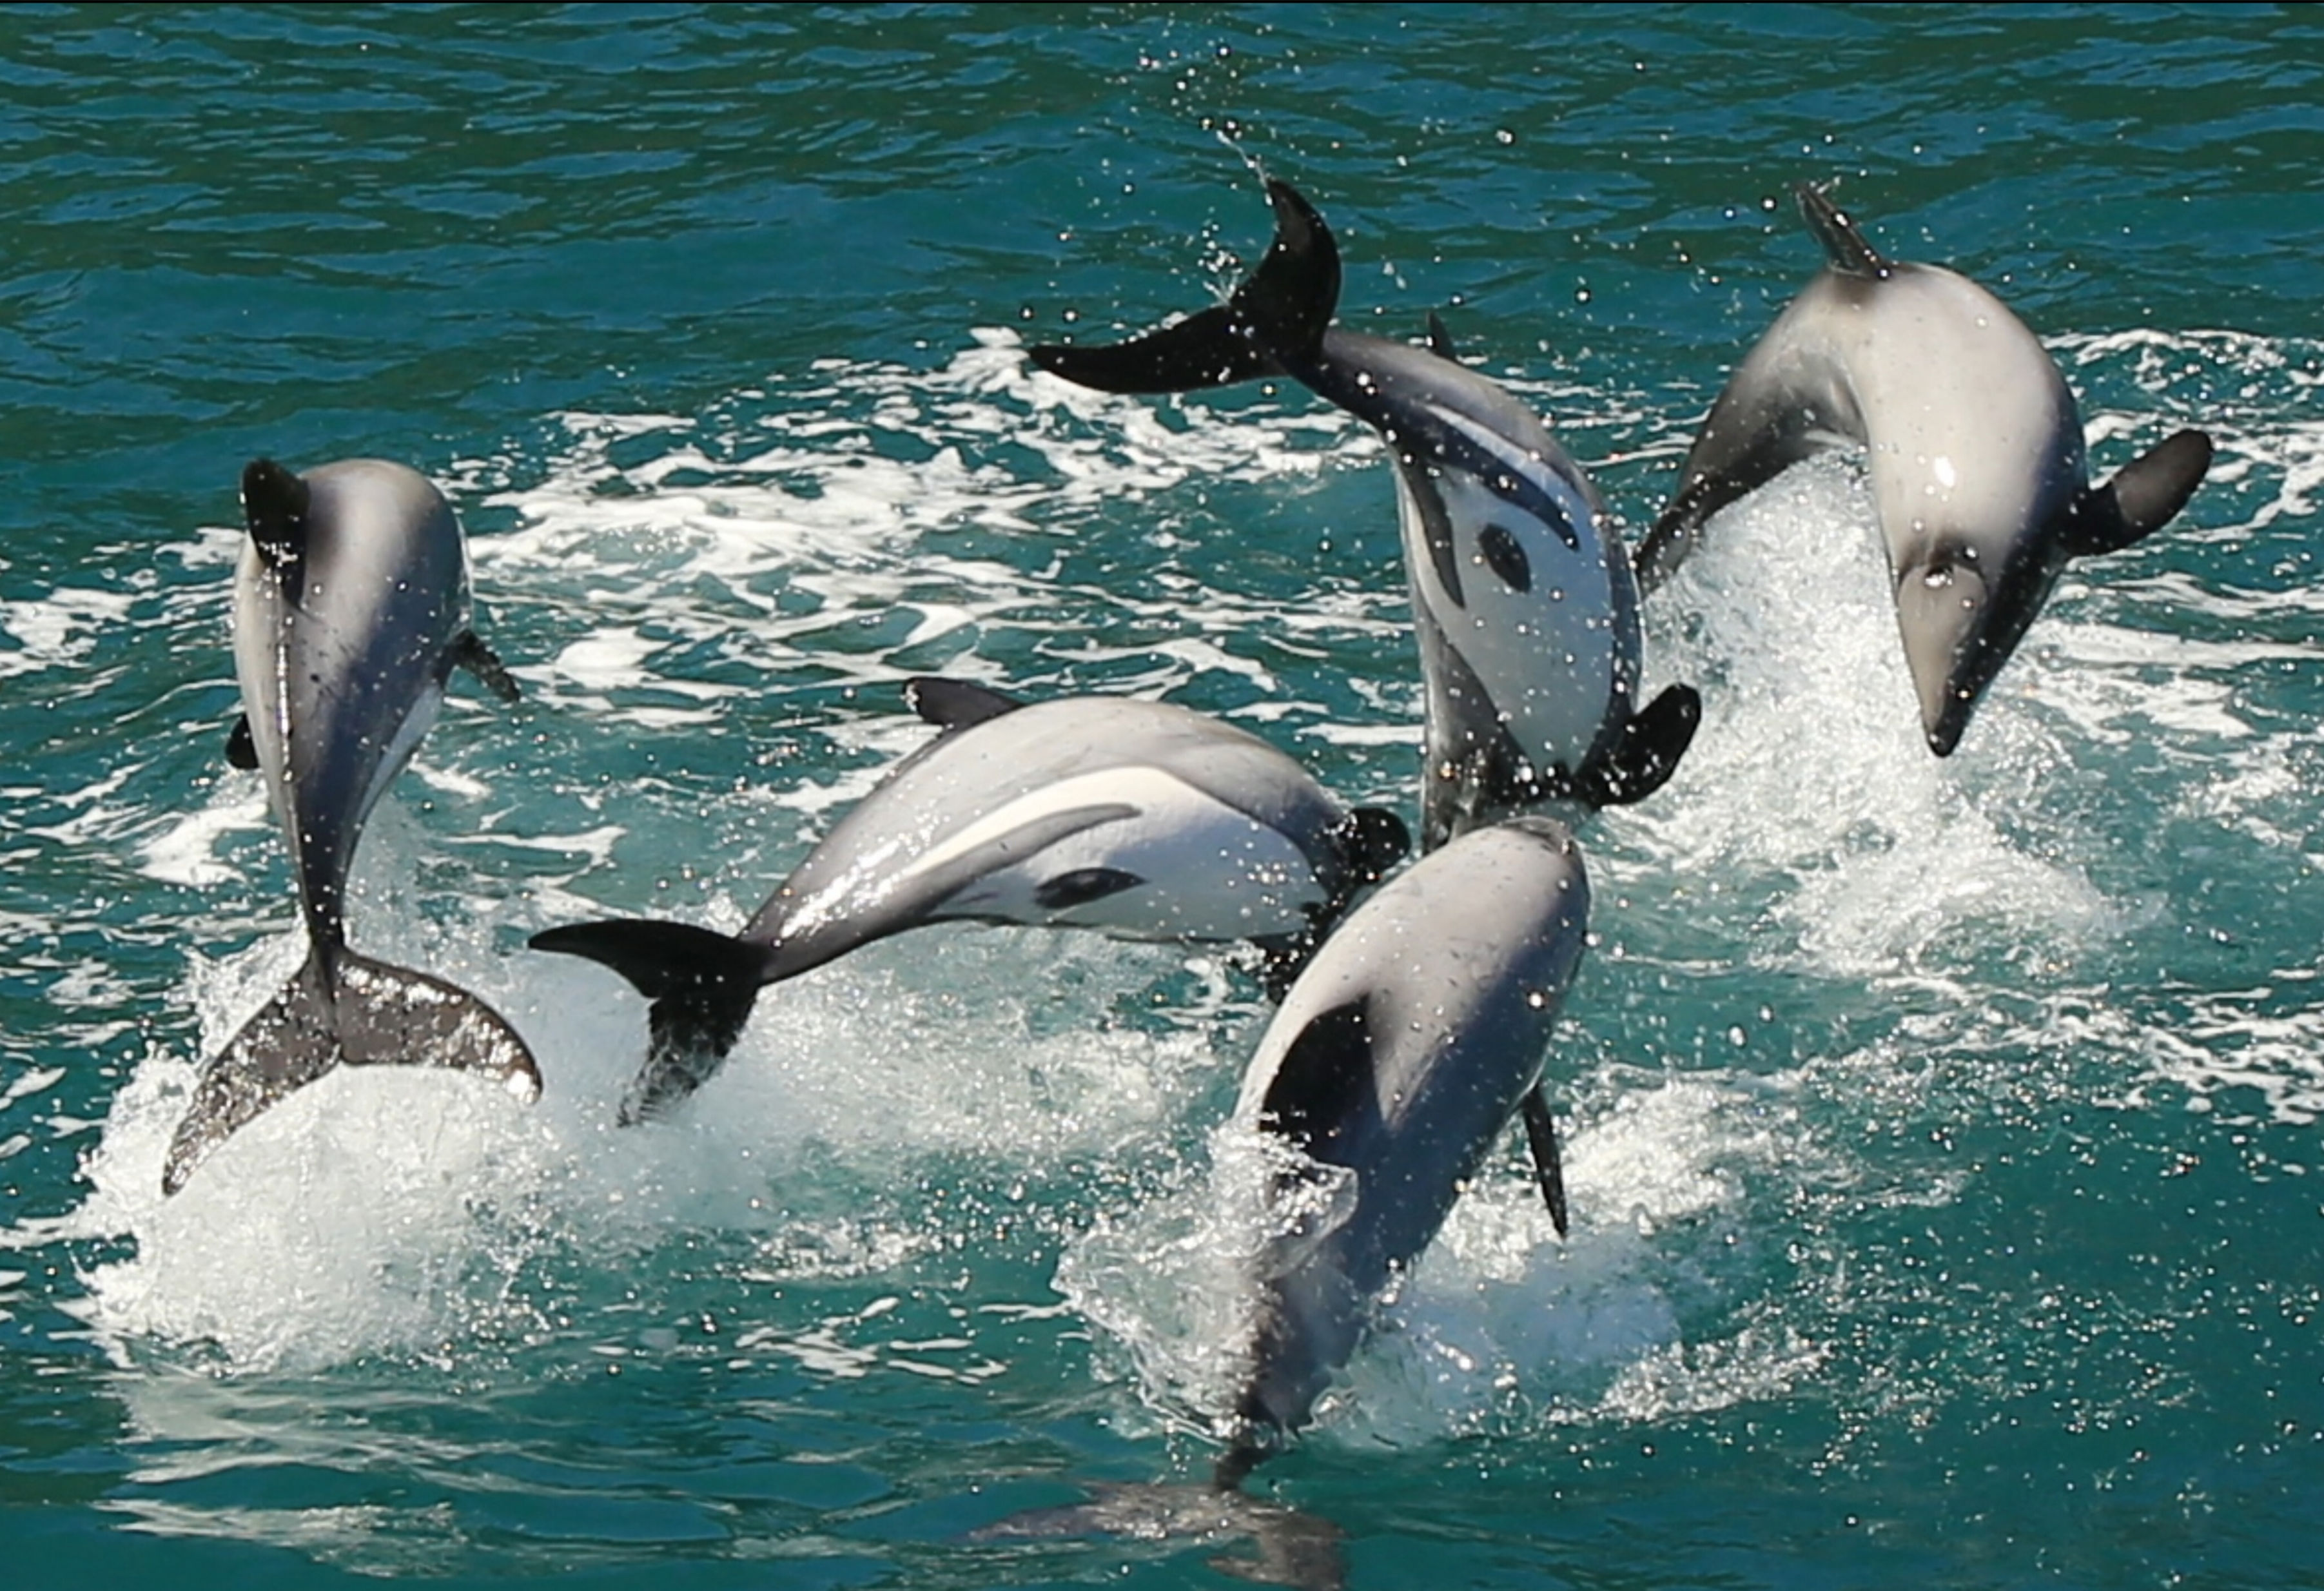 A group of New Zealand dolphins leaping